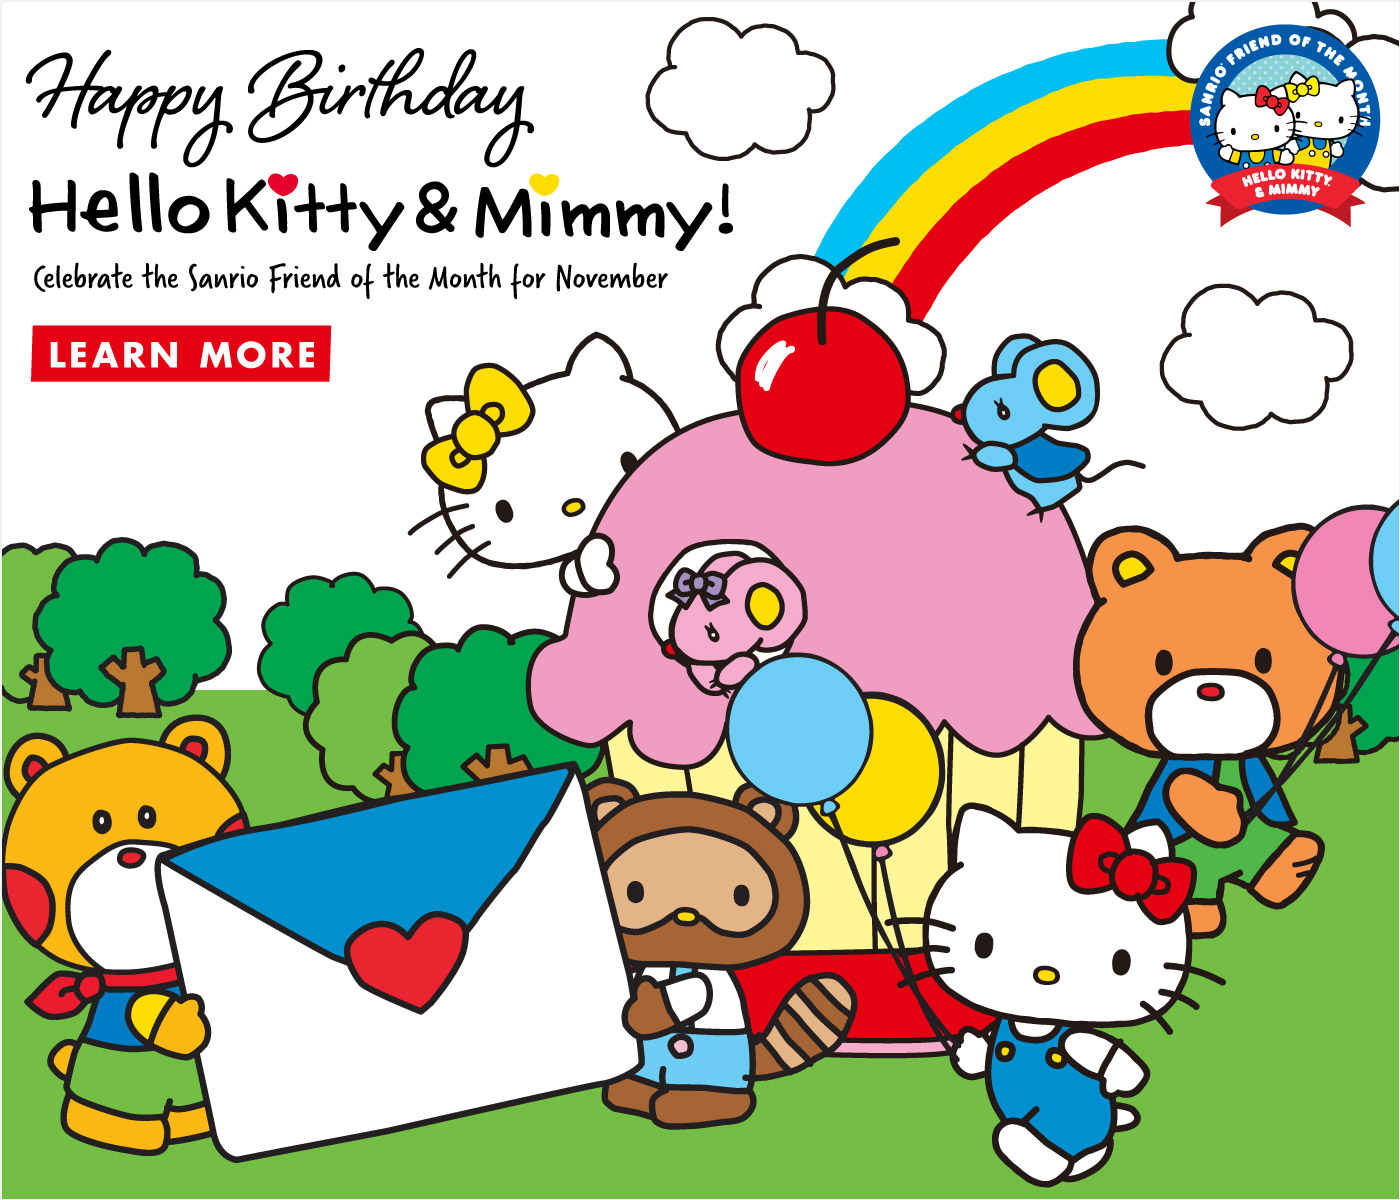 9632a6712 Hello Kitty & Mimmy are the Sanrio Friend of the Month for November